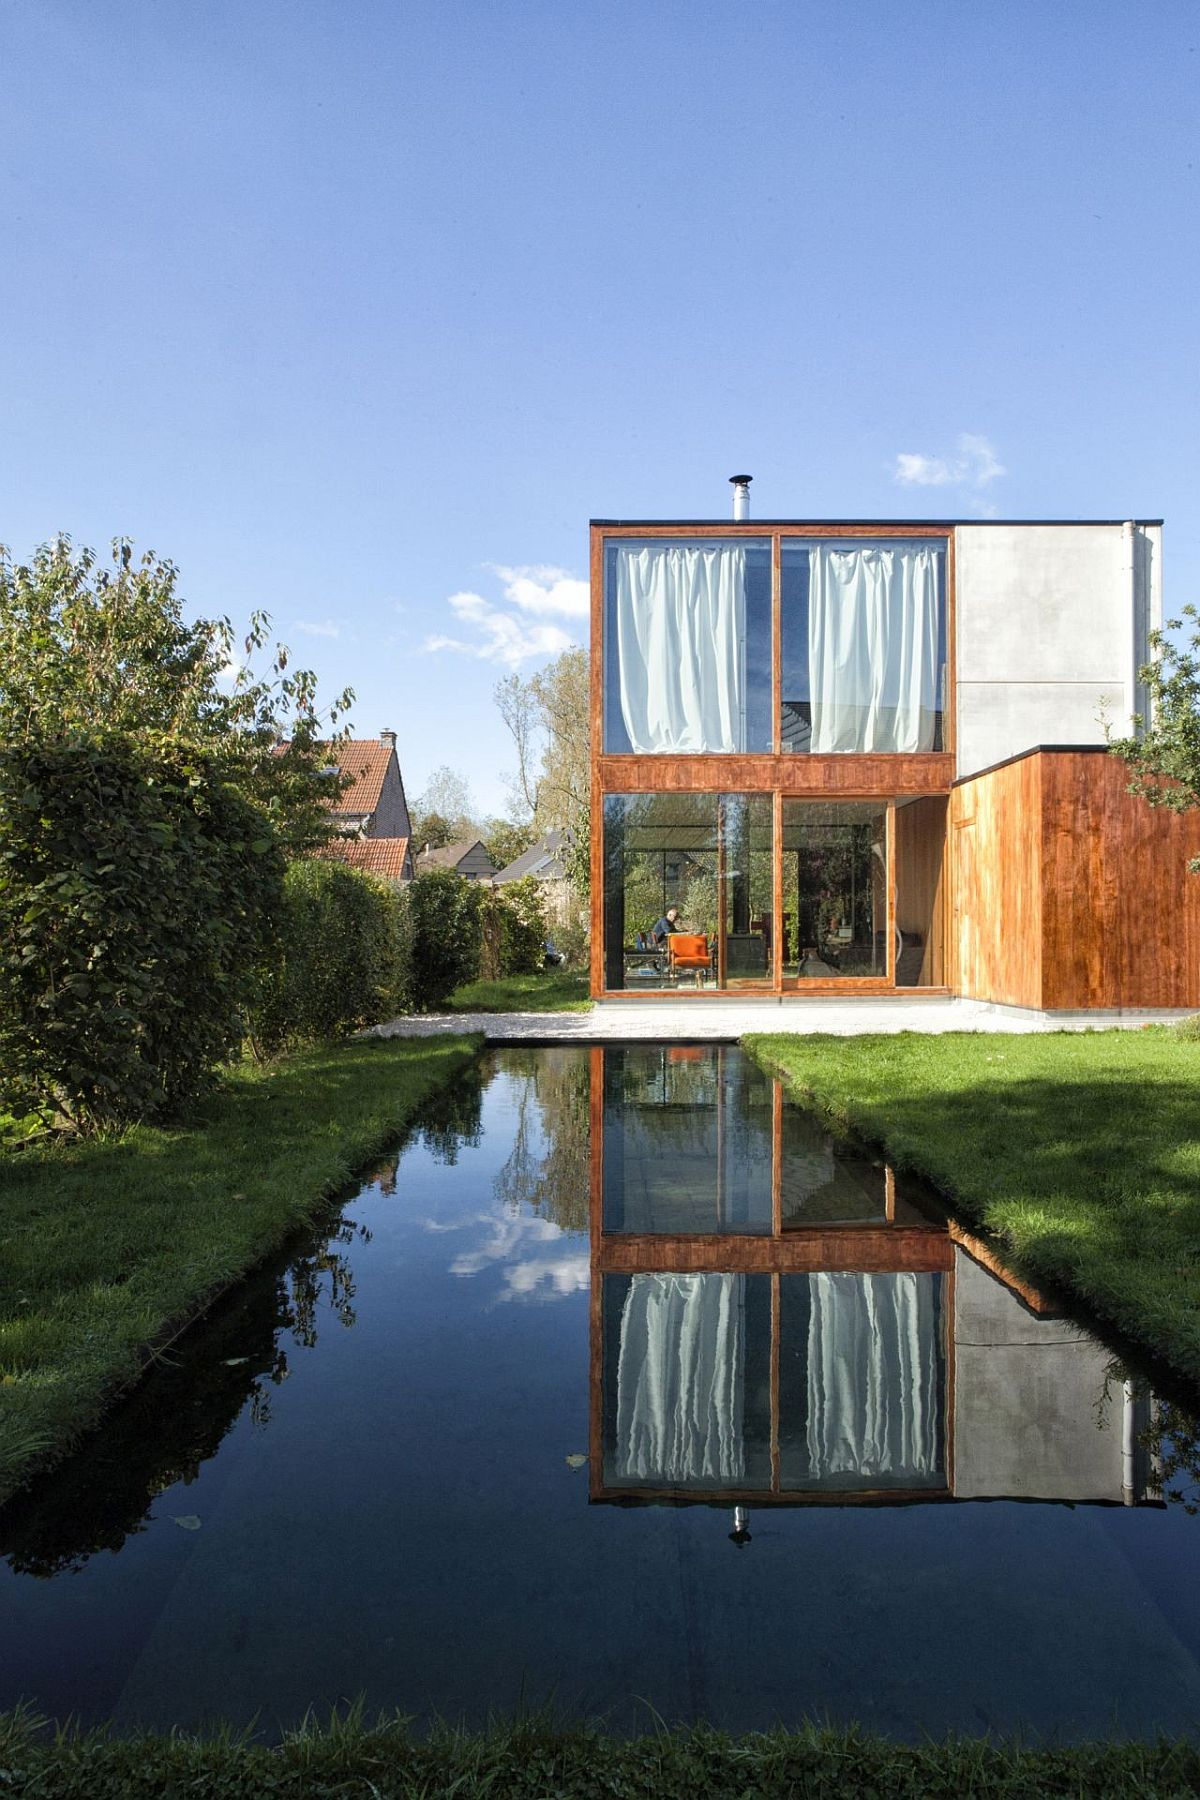 Reflective-pool-and-garden-around-the-house-add-to-its-relaxing-appeal